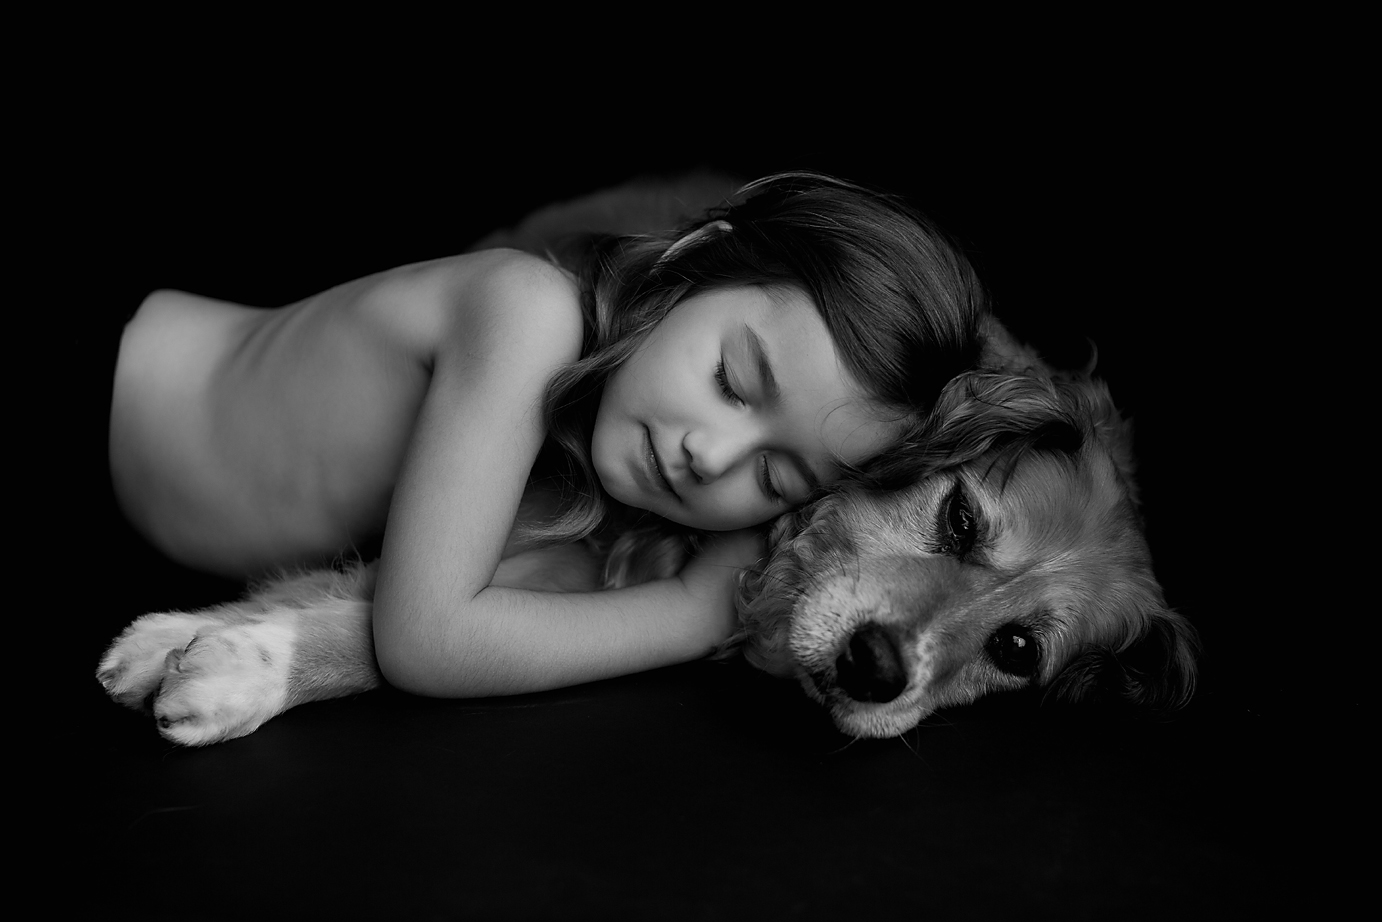 orange-county-los-angeles-child-photographer-girl-and-dog-simplicity-session-black-and-white.jpg